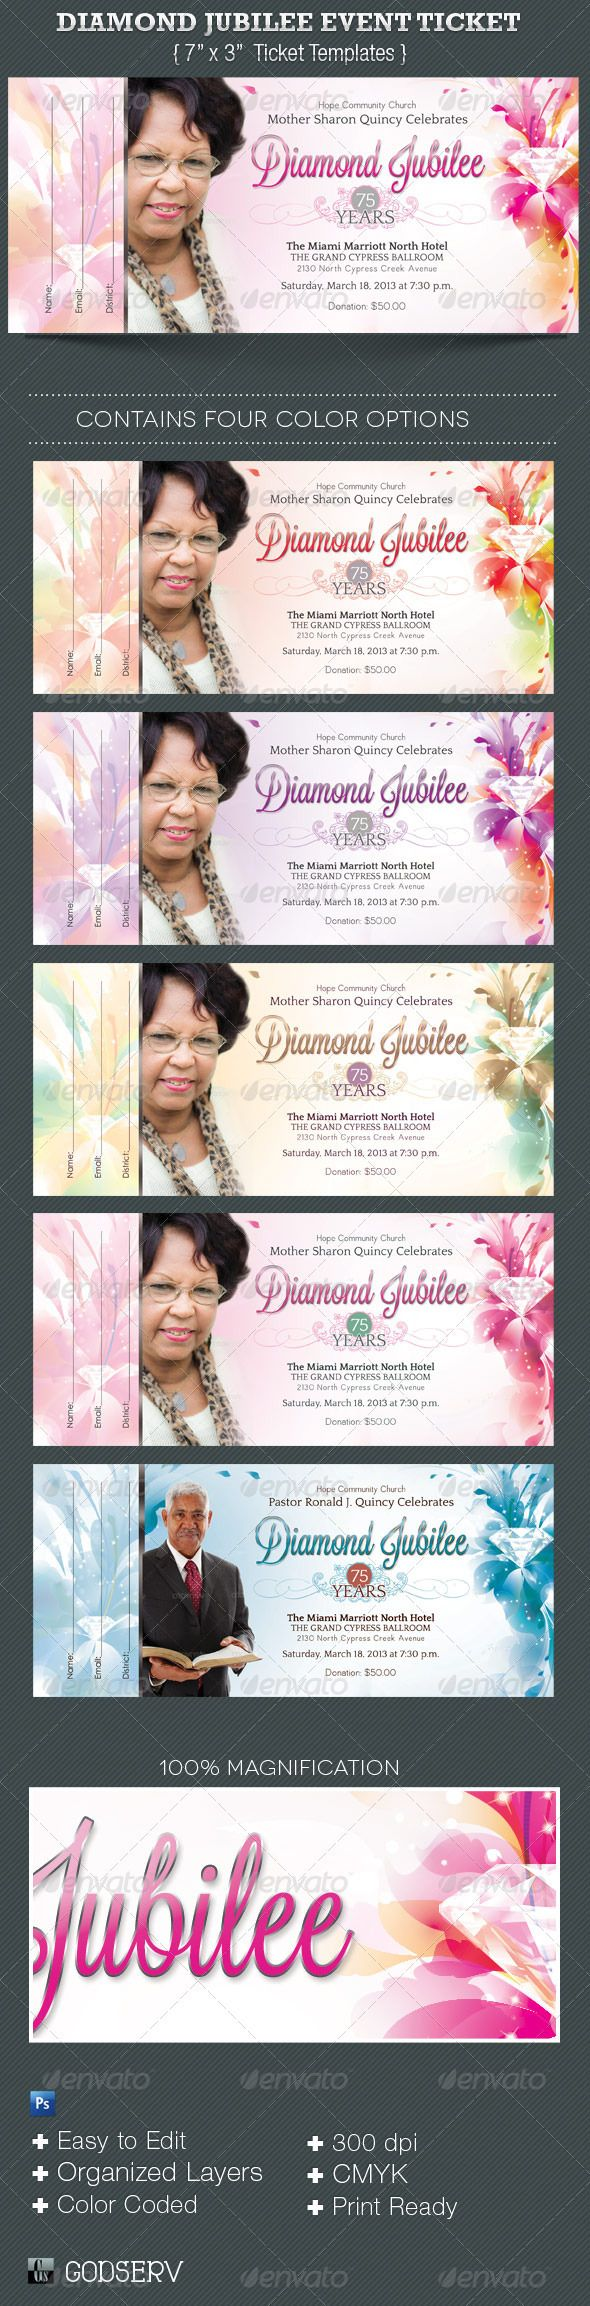 Diamond Jubilee Event Ticket Template - $6.00 The Diamond Jubilee Event Ticket Template is for any kind of commemorative event. The floral design lends itself other activiites like birthdays, luncheons, baby showers and more. Make it part of your arsenal in your template database. In this package you'll find 1 Photoshop file with 5 One-Click color options. A great value. All layers in the files are arranged, color coded and simple to edit.